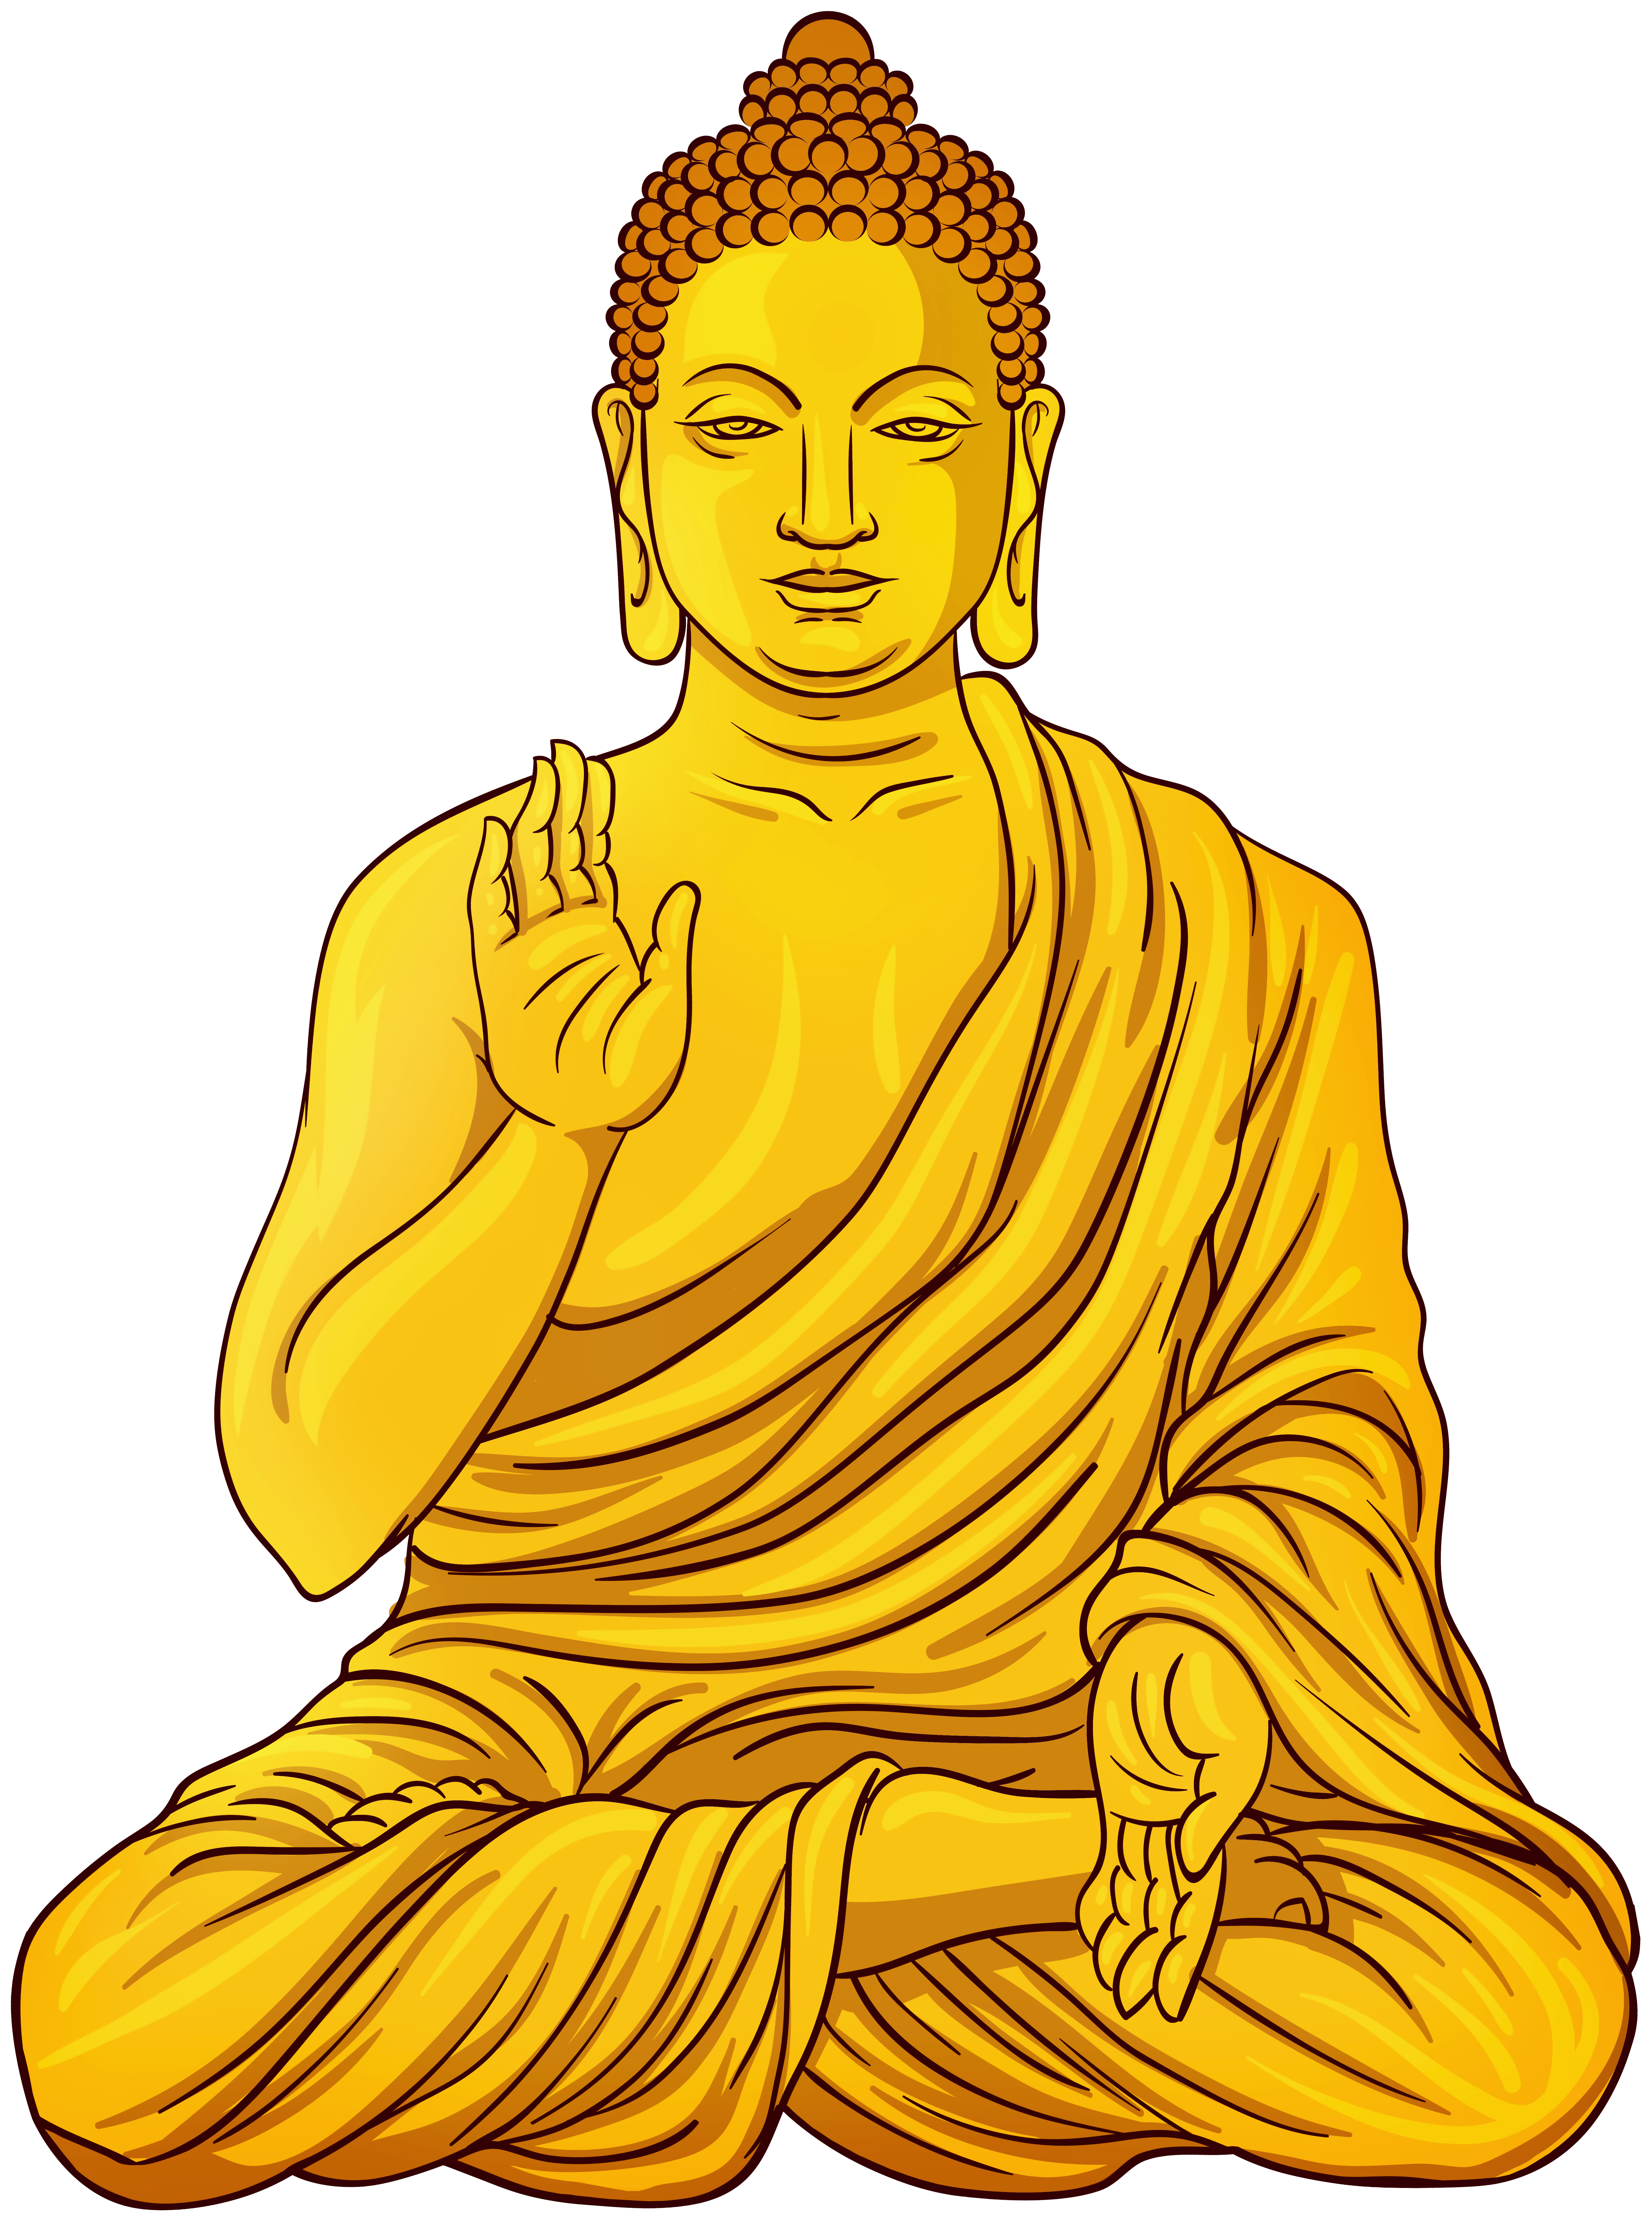 Buddha clipart gold clip art freeuse download Gold Buddha Statue PNG Clip Art - Best WEB Clipart clip art freeuse download